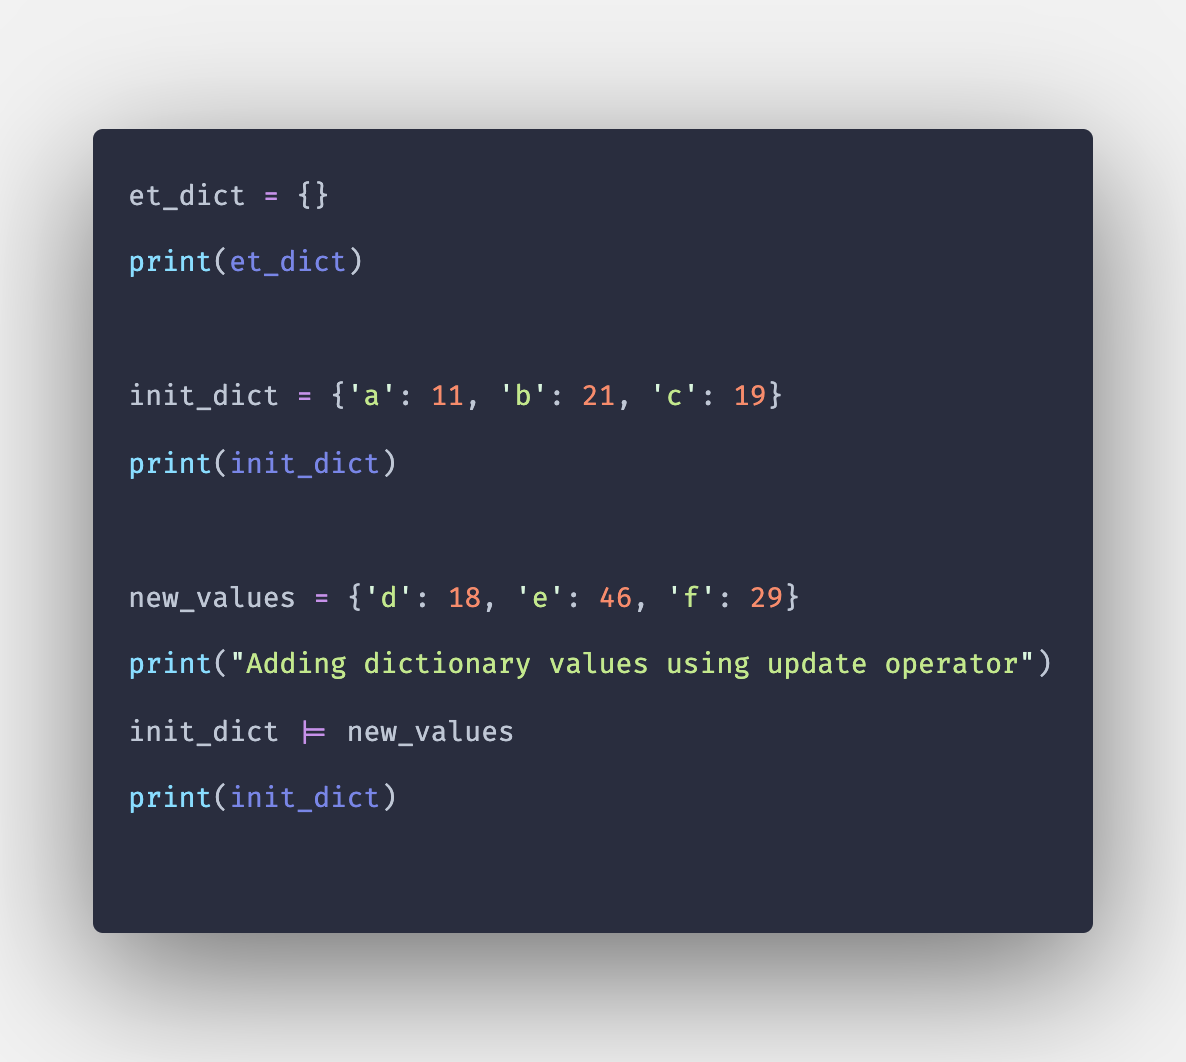 How to Add Values to Dictionary in Python